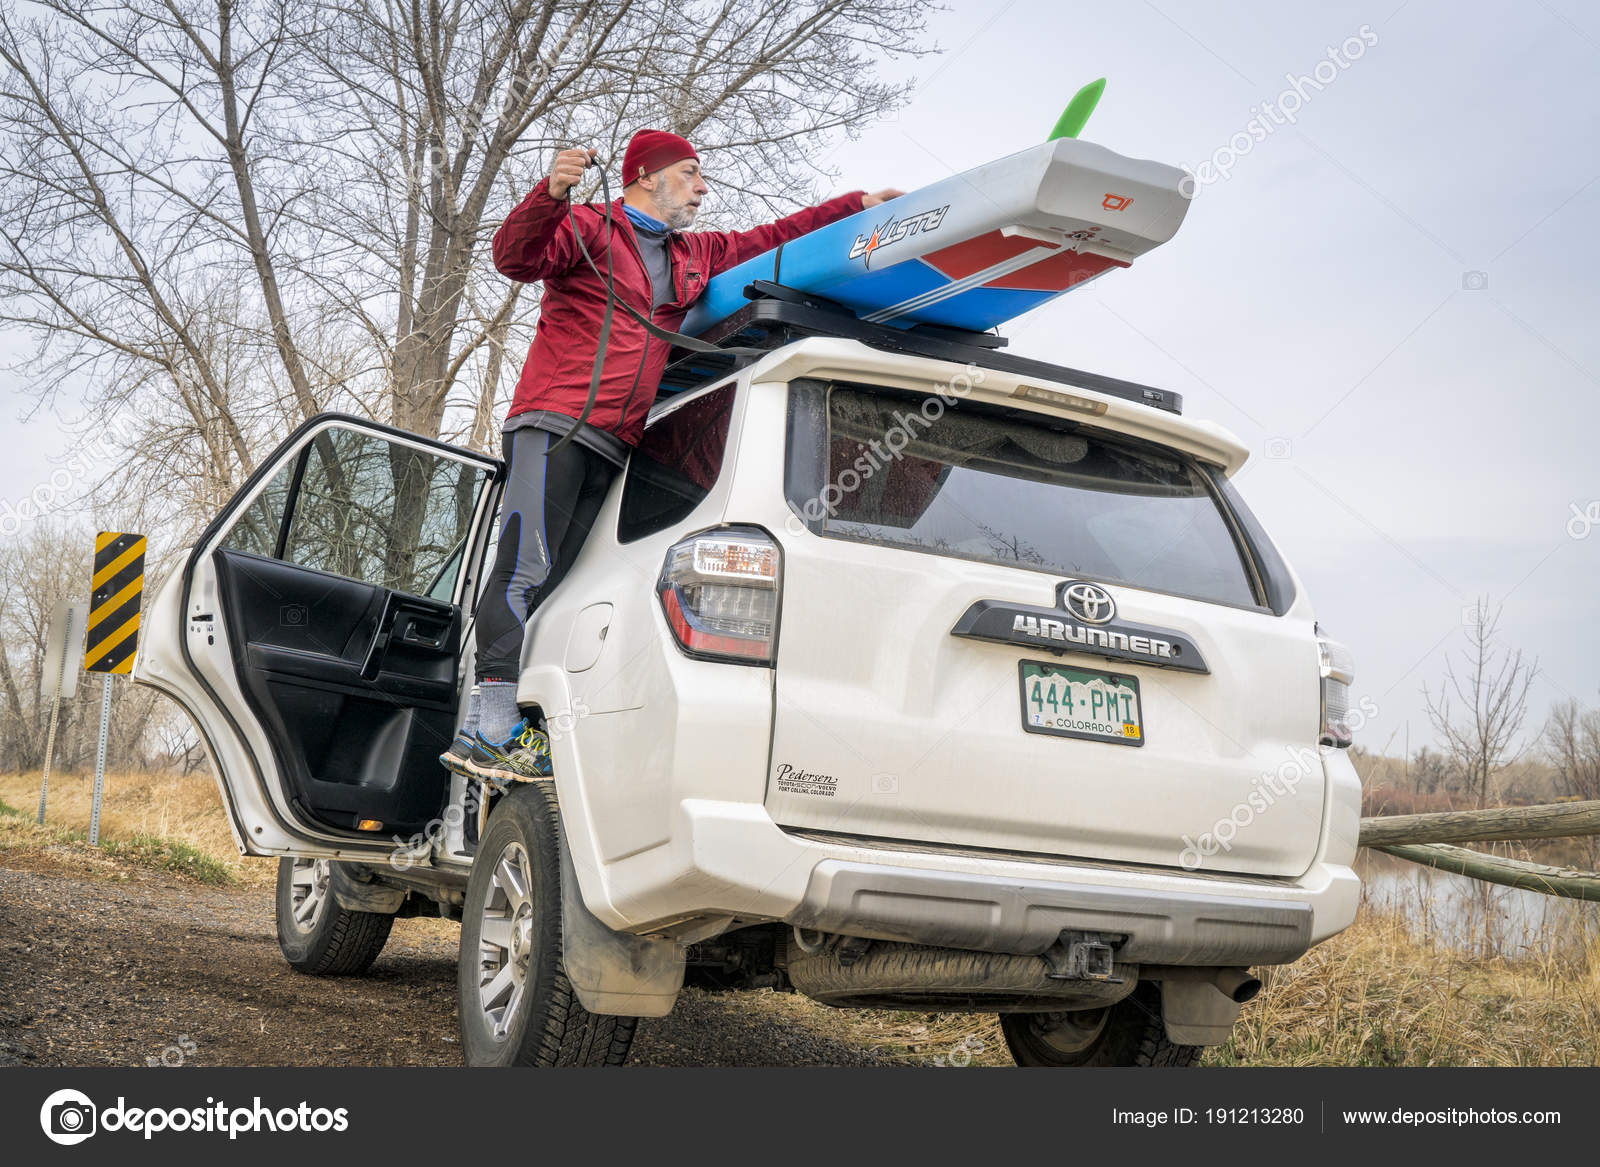 Paddle Board Car Racks >> Unloading Stand Up Paddleboard From Car Roof Racks Stock